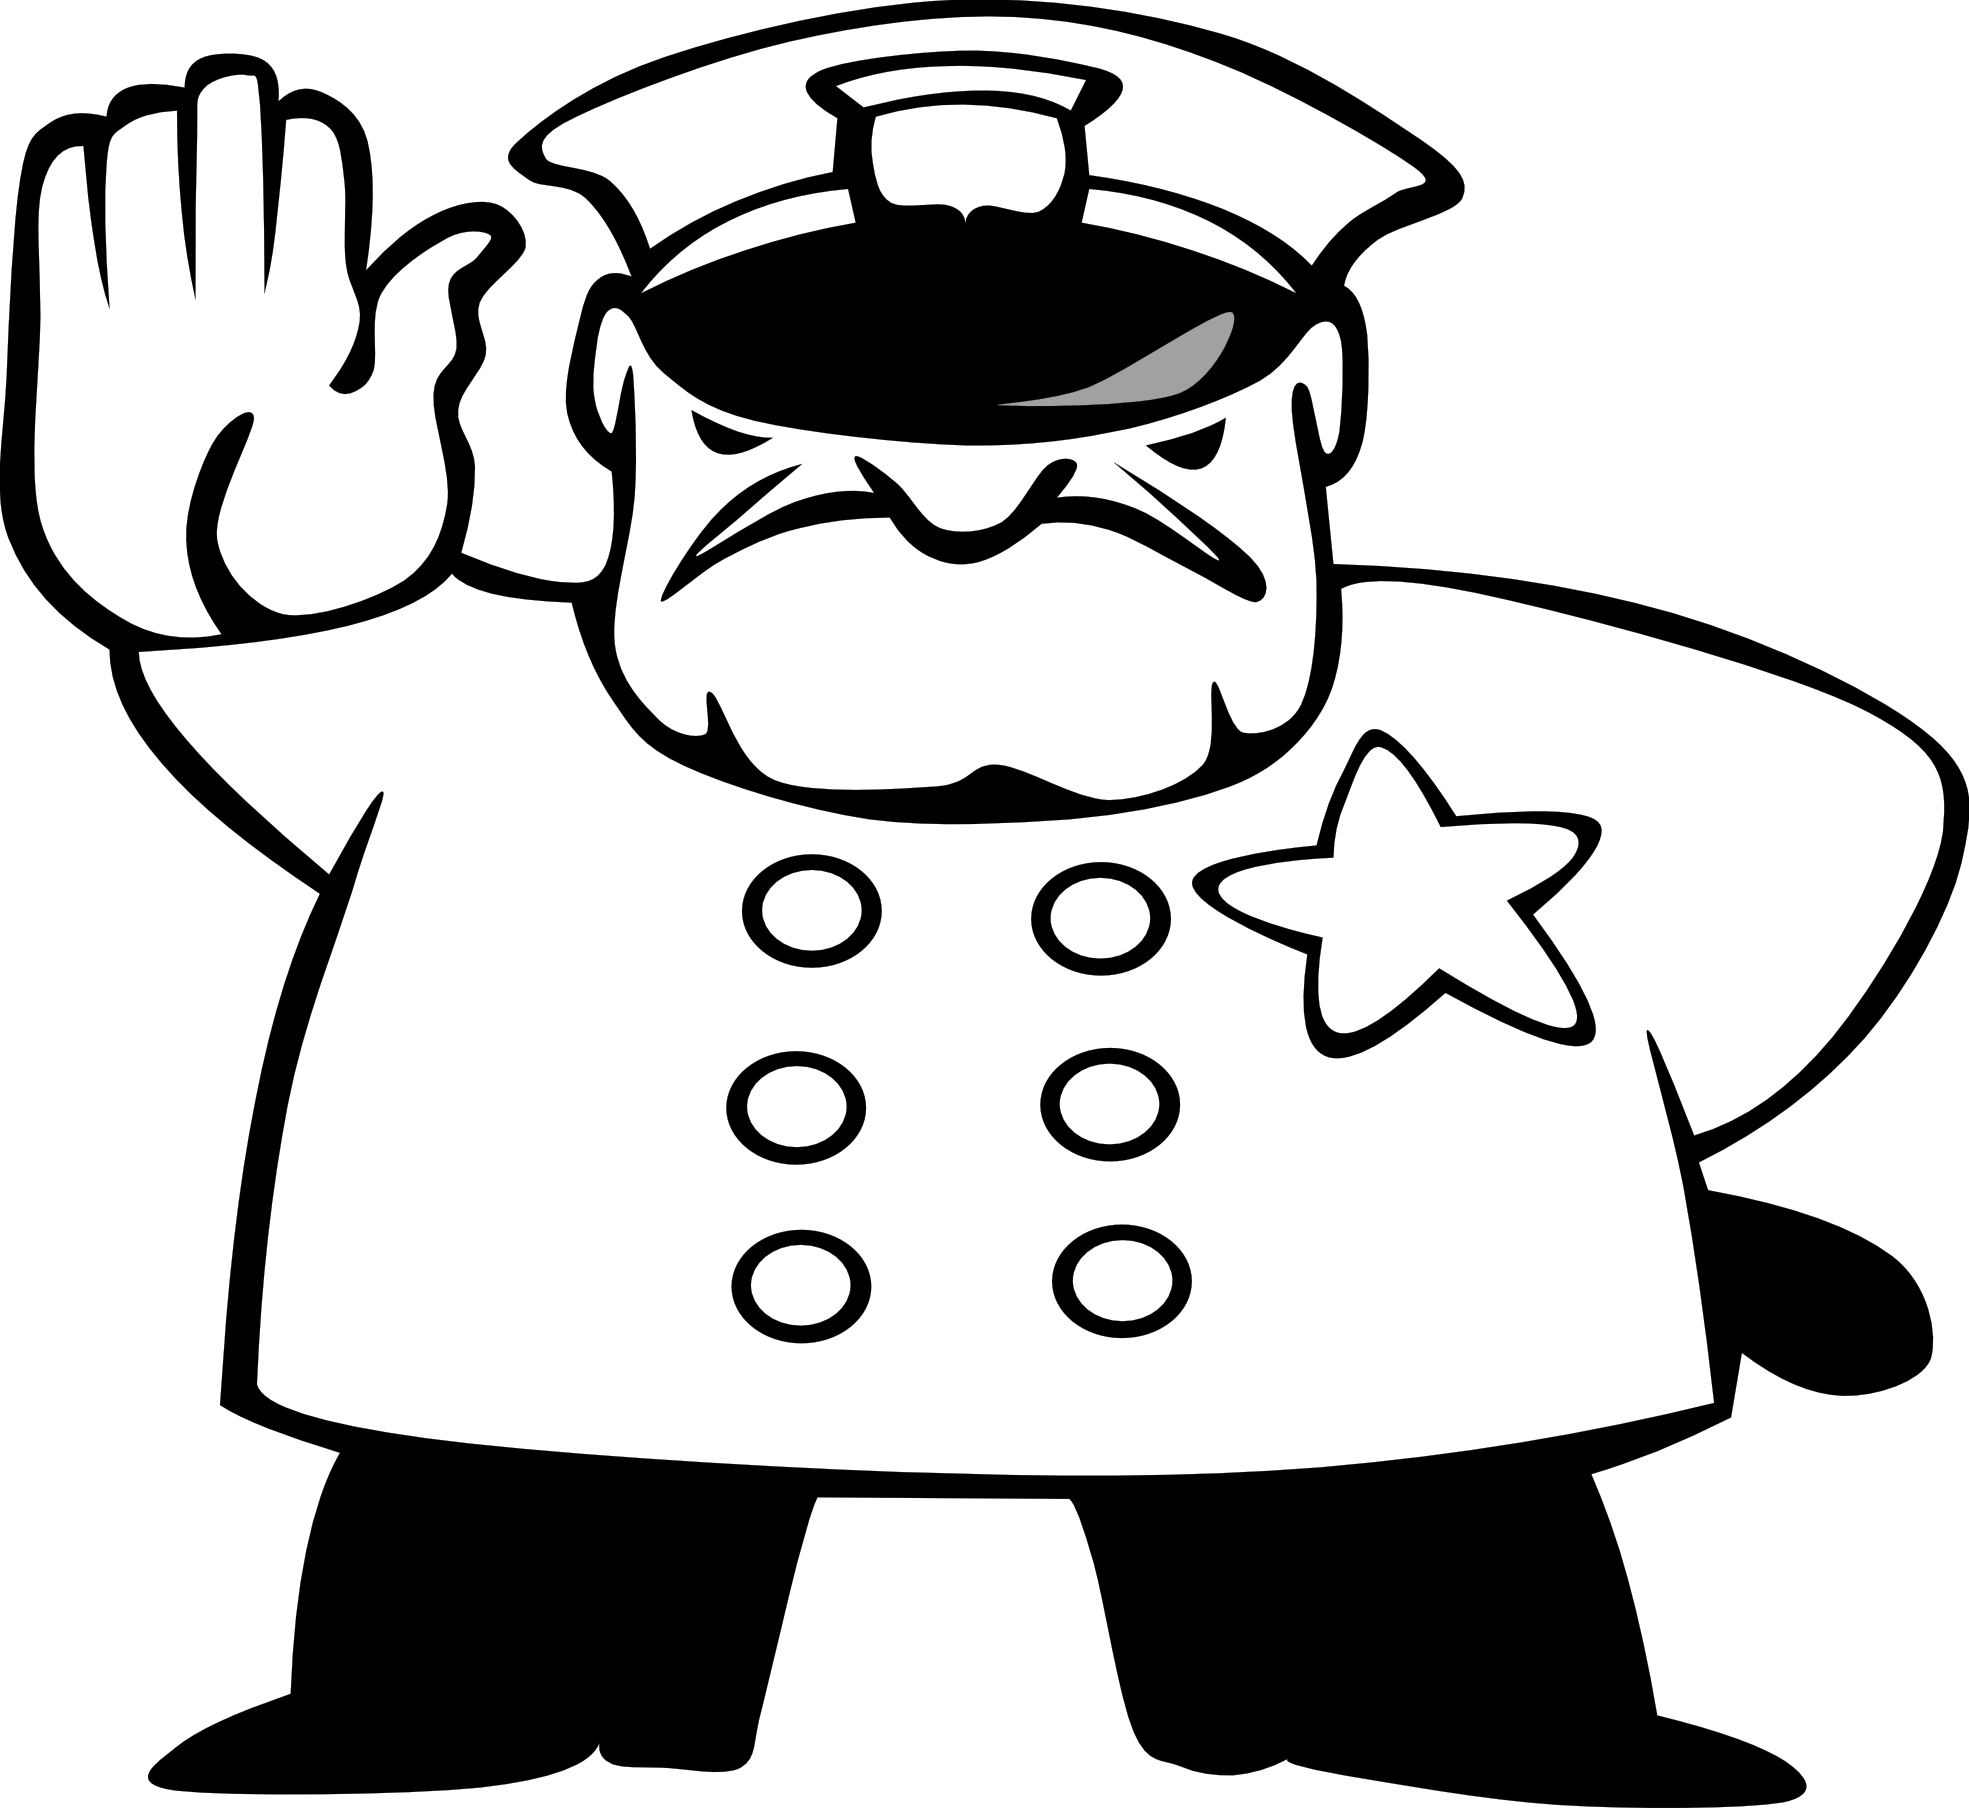 Police black and white. Handcuff clipart policeman